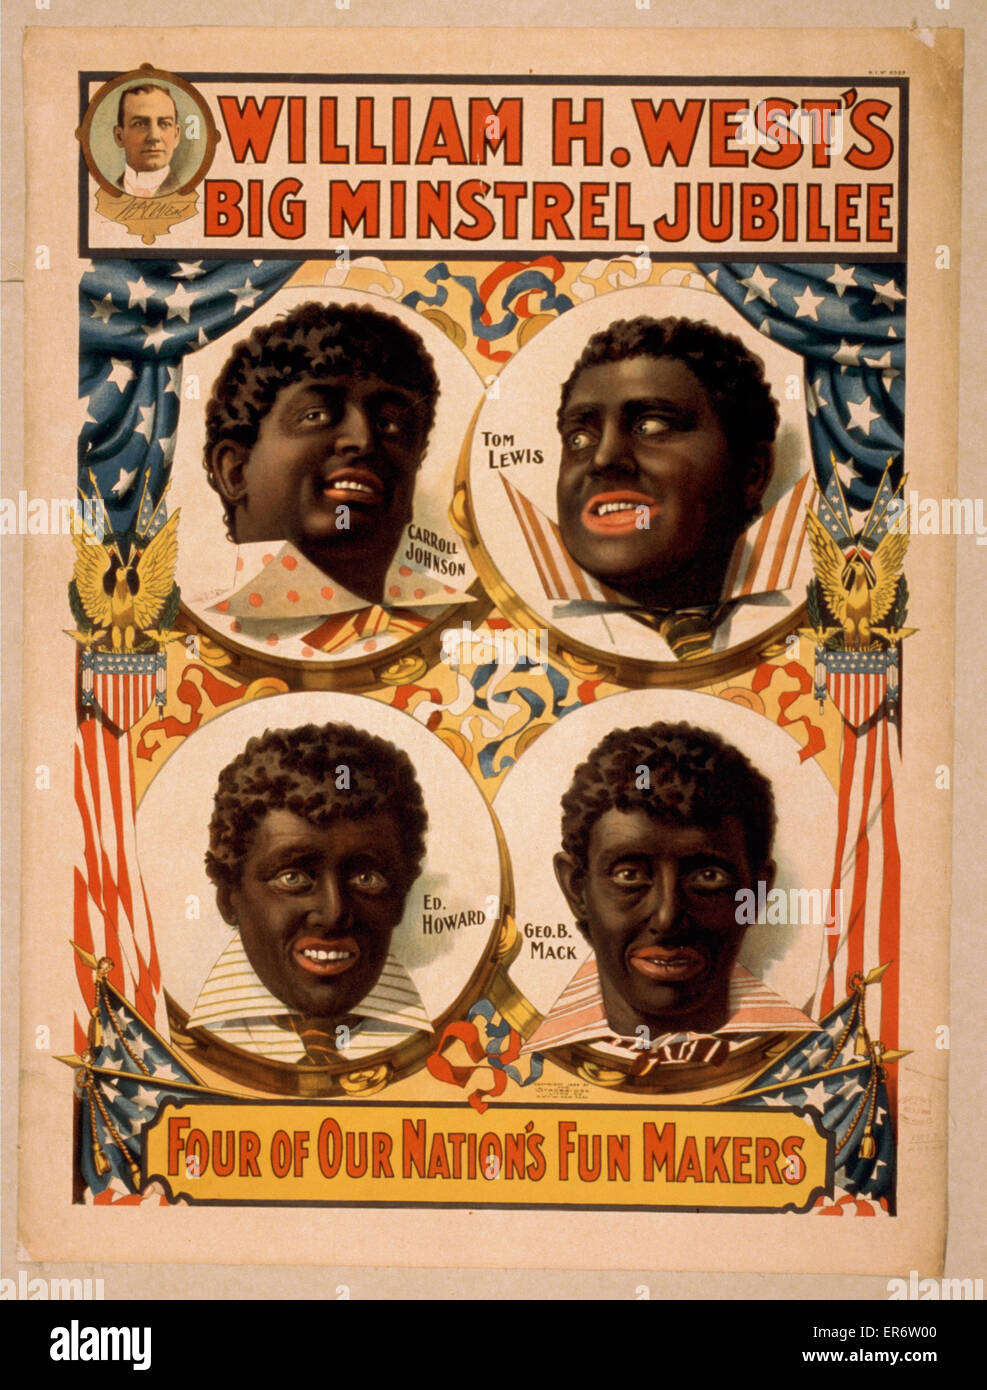 William H. West's Big Minstrel Jubilee. Consists of portraits of Carroll Johnson, Tom Lewis, Geo. B. Mack, and - Stock Image